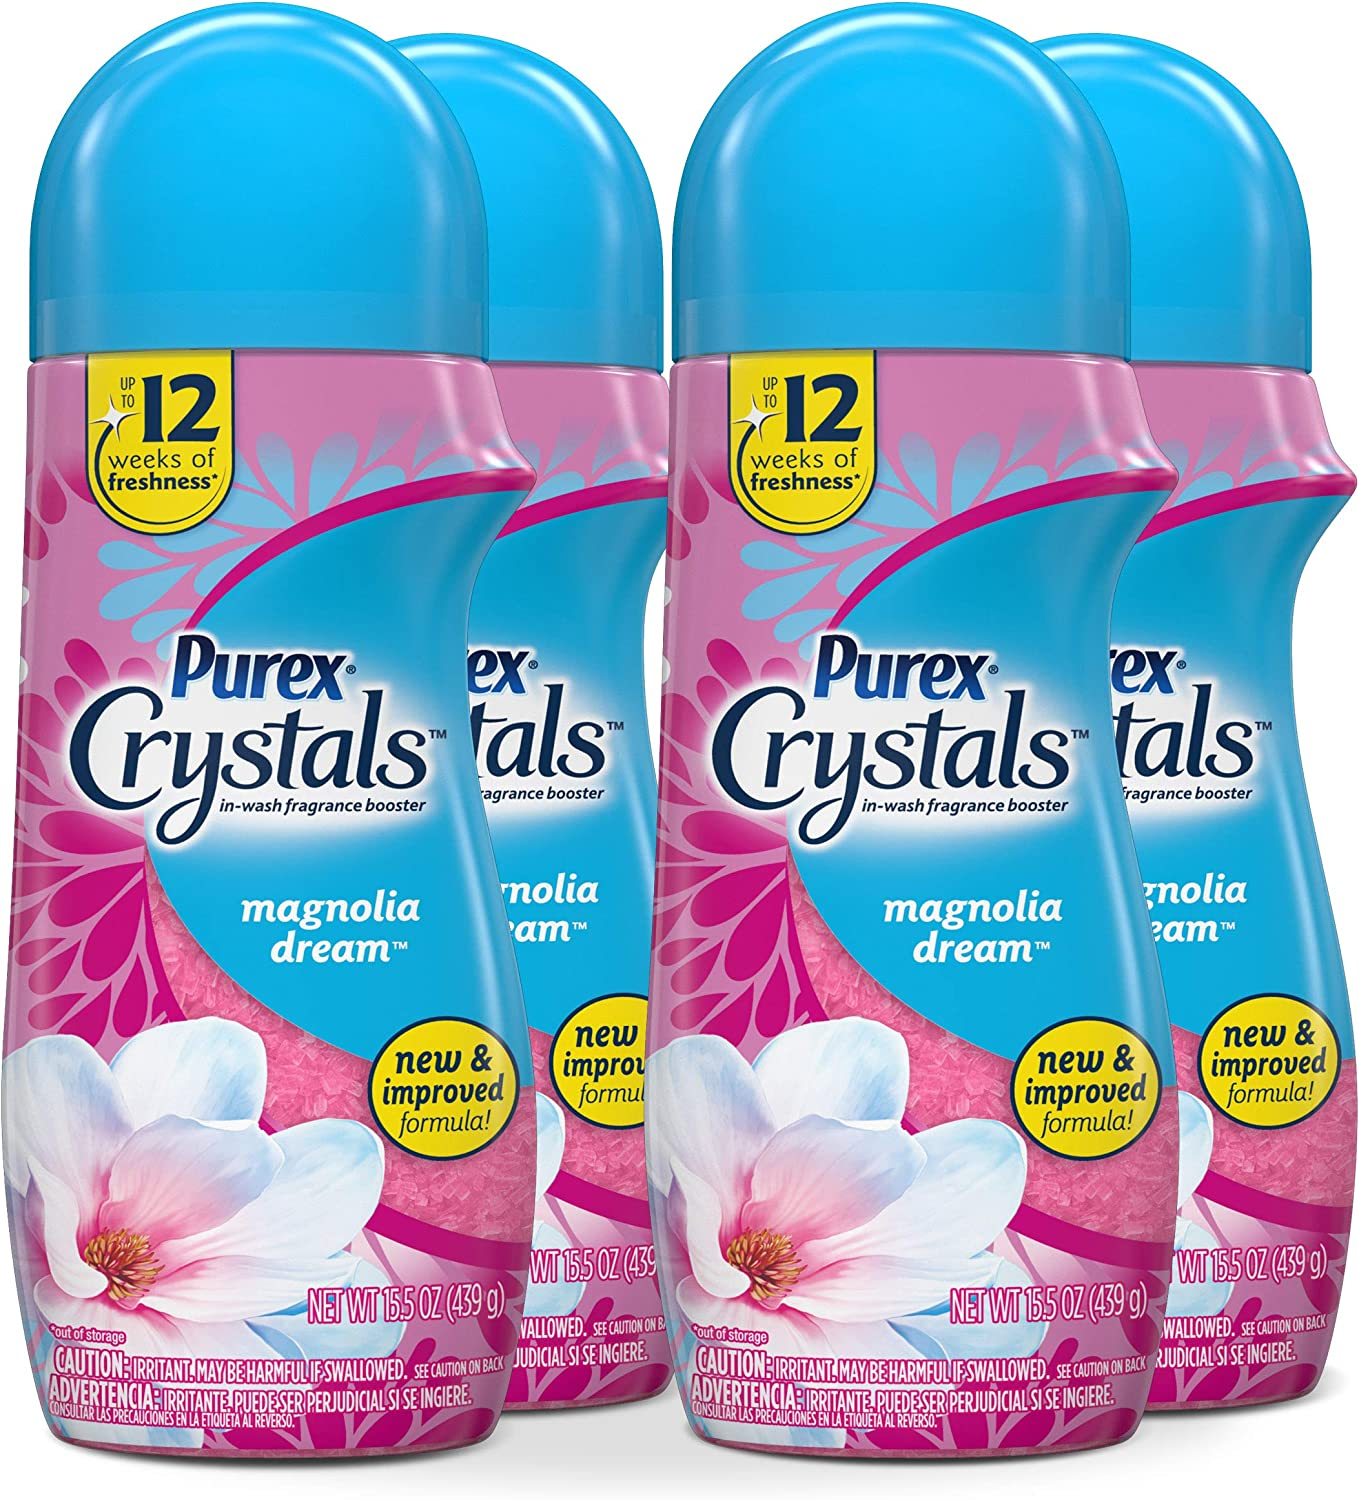 Purex Crystals in-Wash Fragrance and Scent Booster, Magnolia Dream, 15.5 Ounce, 4 Count